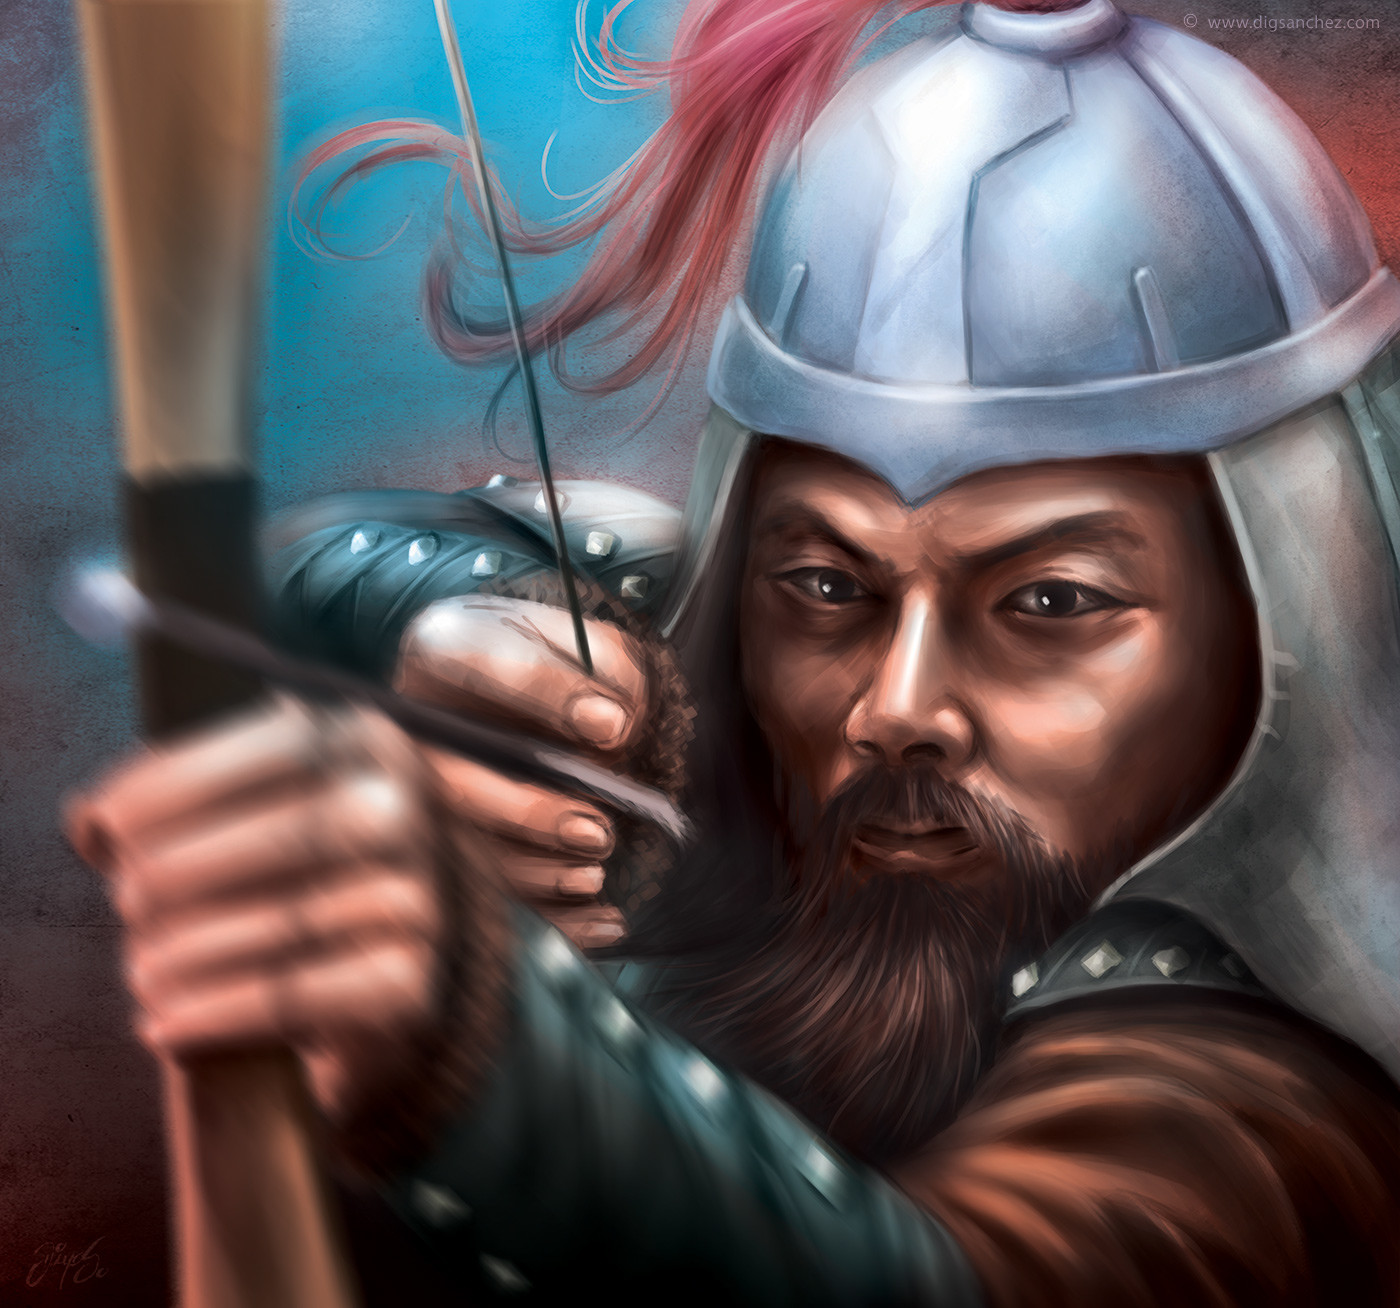 Card character - Genghis Khan